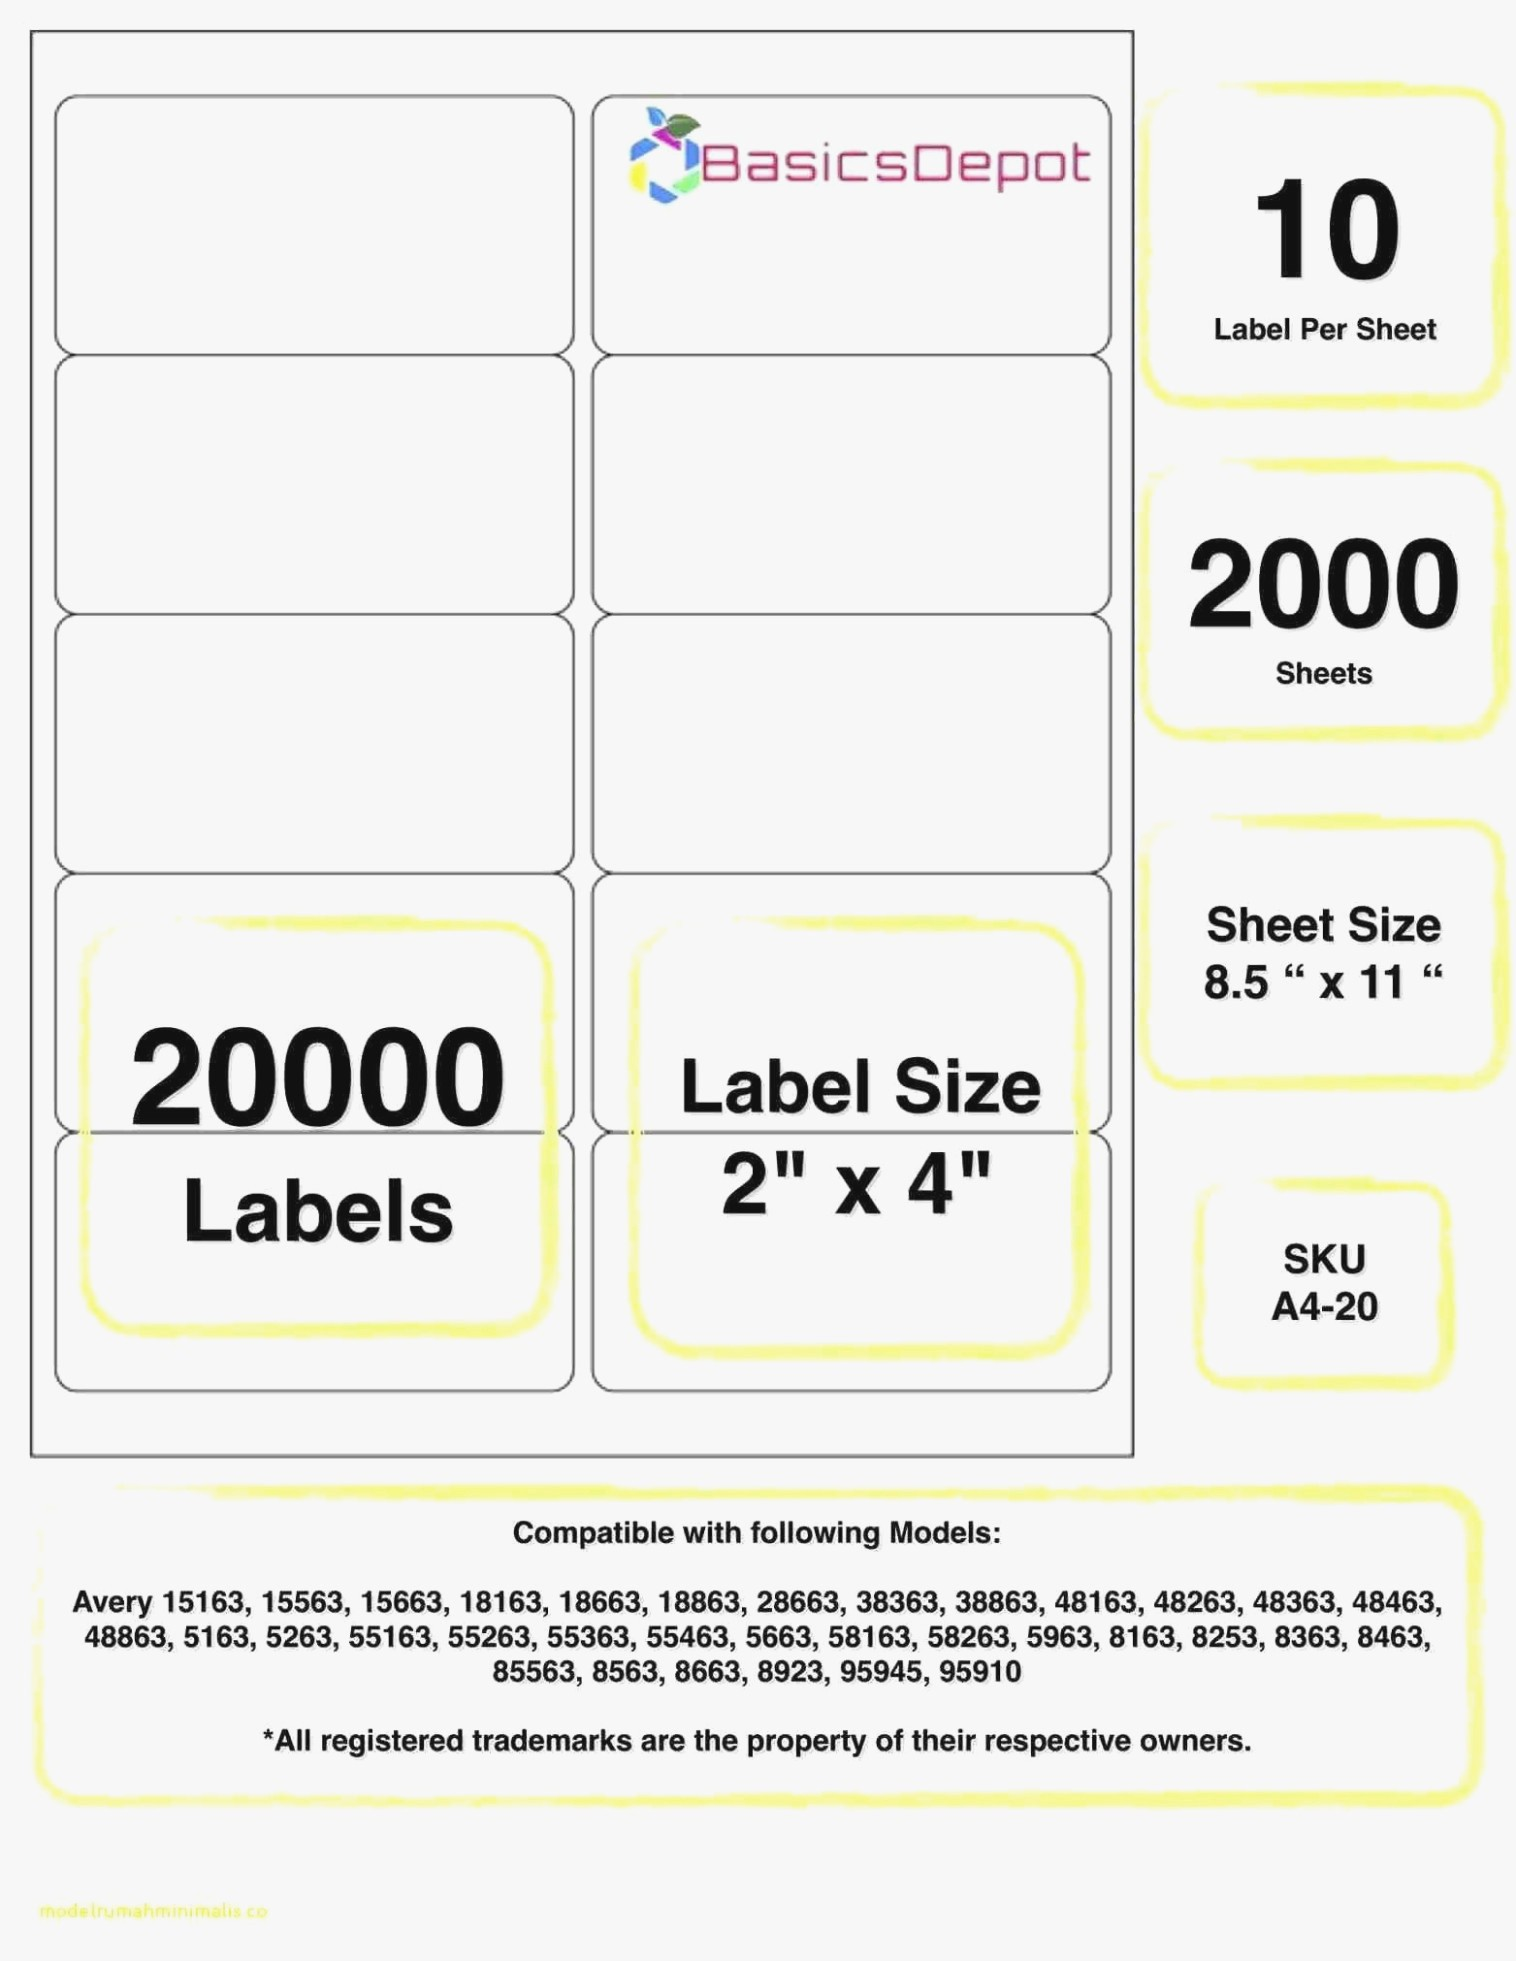 10 Per Sheet Label Template New 15 Questions to ask at Avery Label Sizes 15 Per Sheet